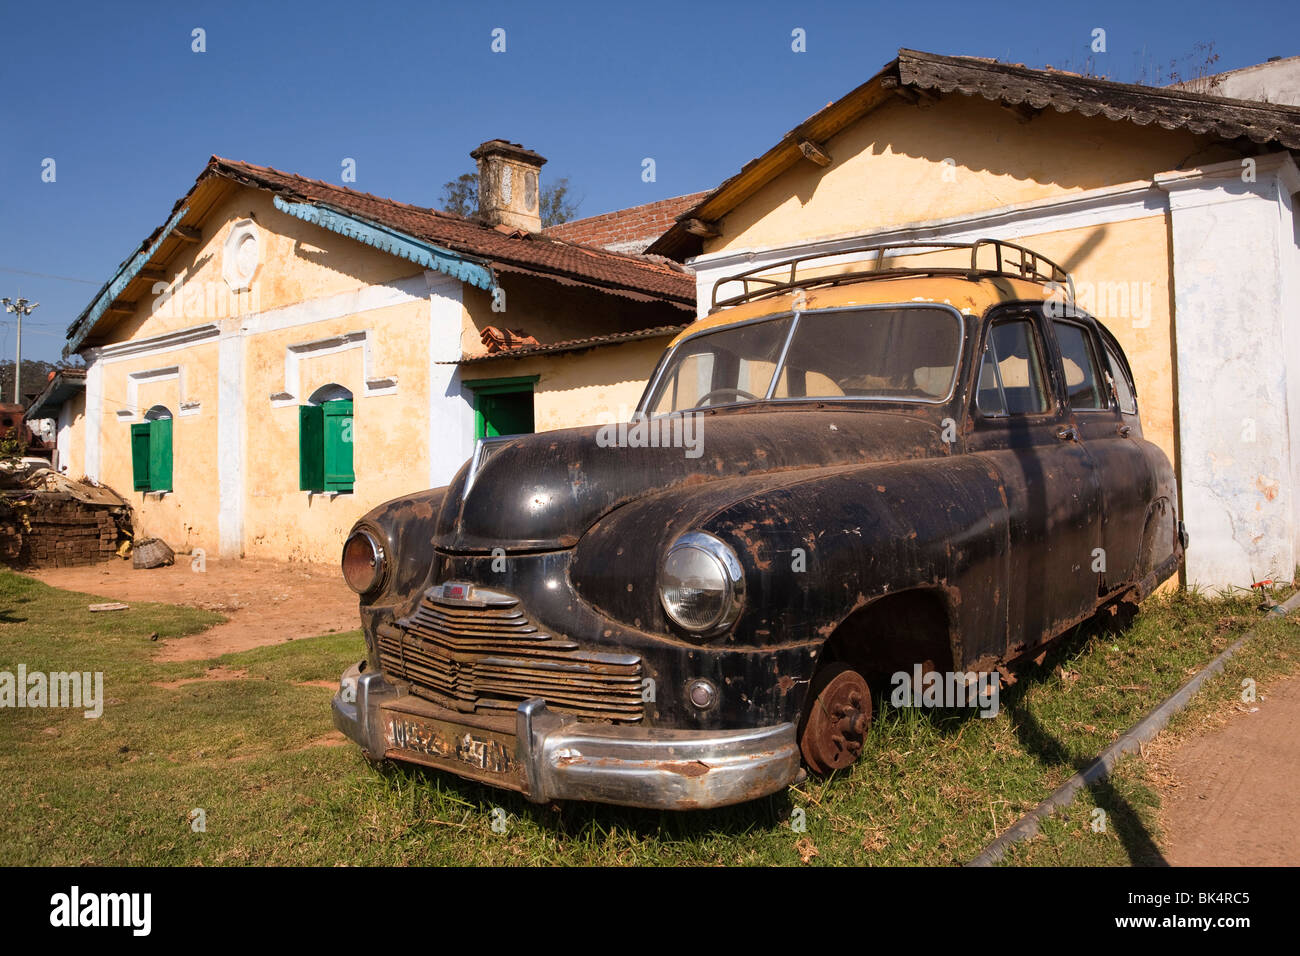 Standard Vanguard Stock Photos & Standard Vanguard Stock Images - Alamy